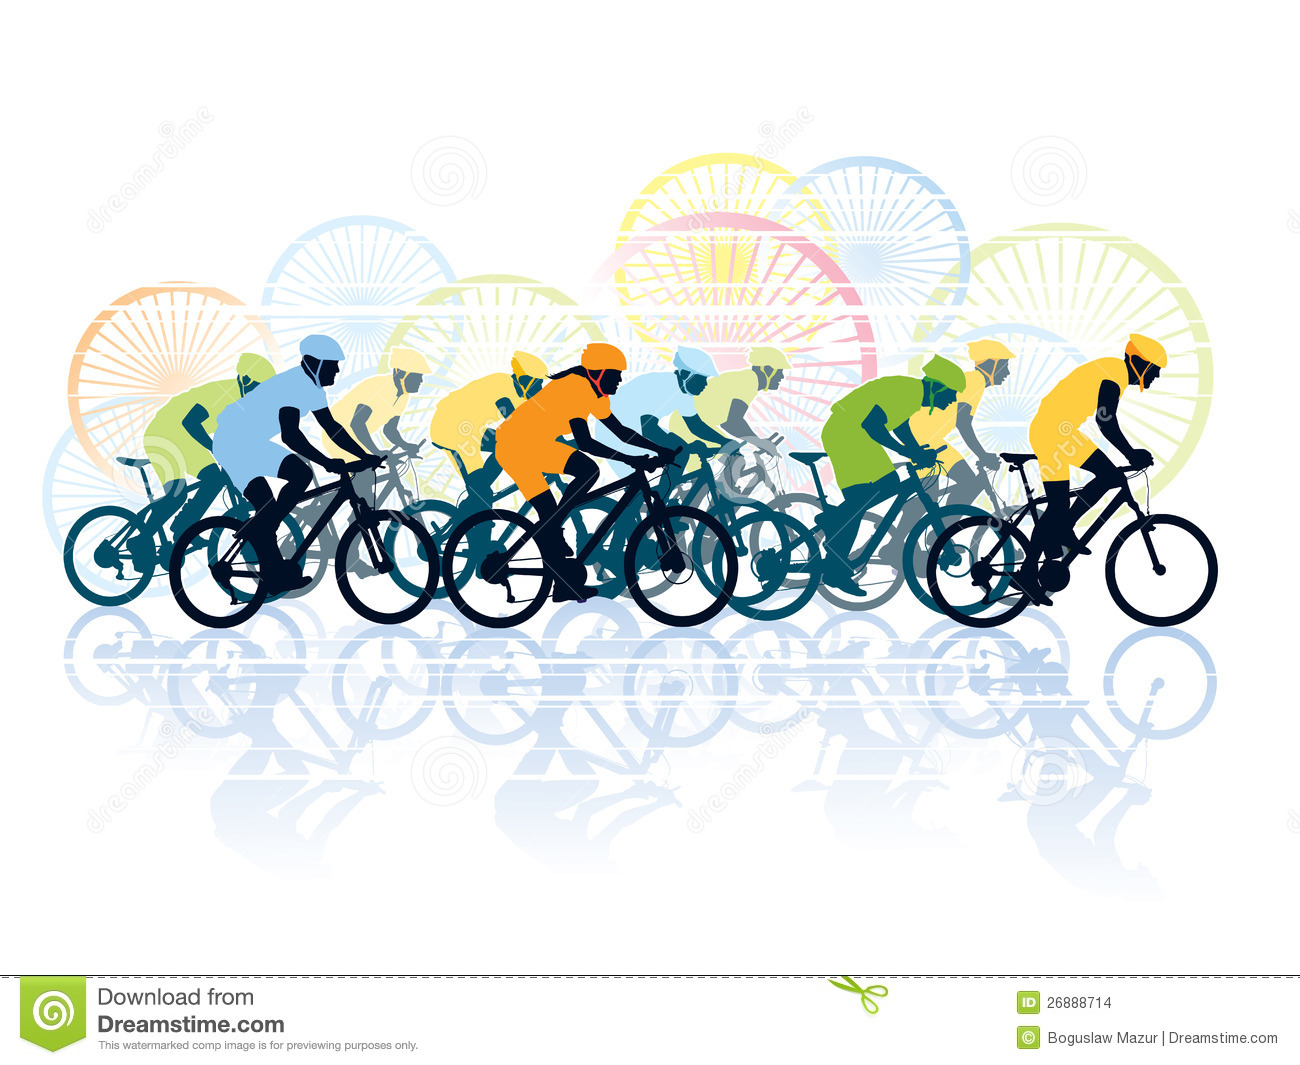 Cycle race clipart jpg download Cycle race clipart - ClipartFest jpg download